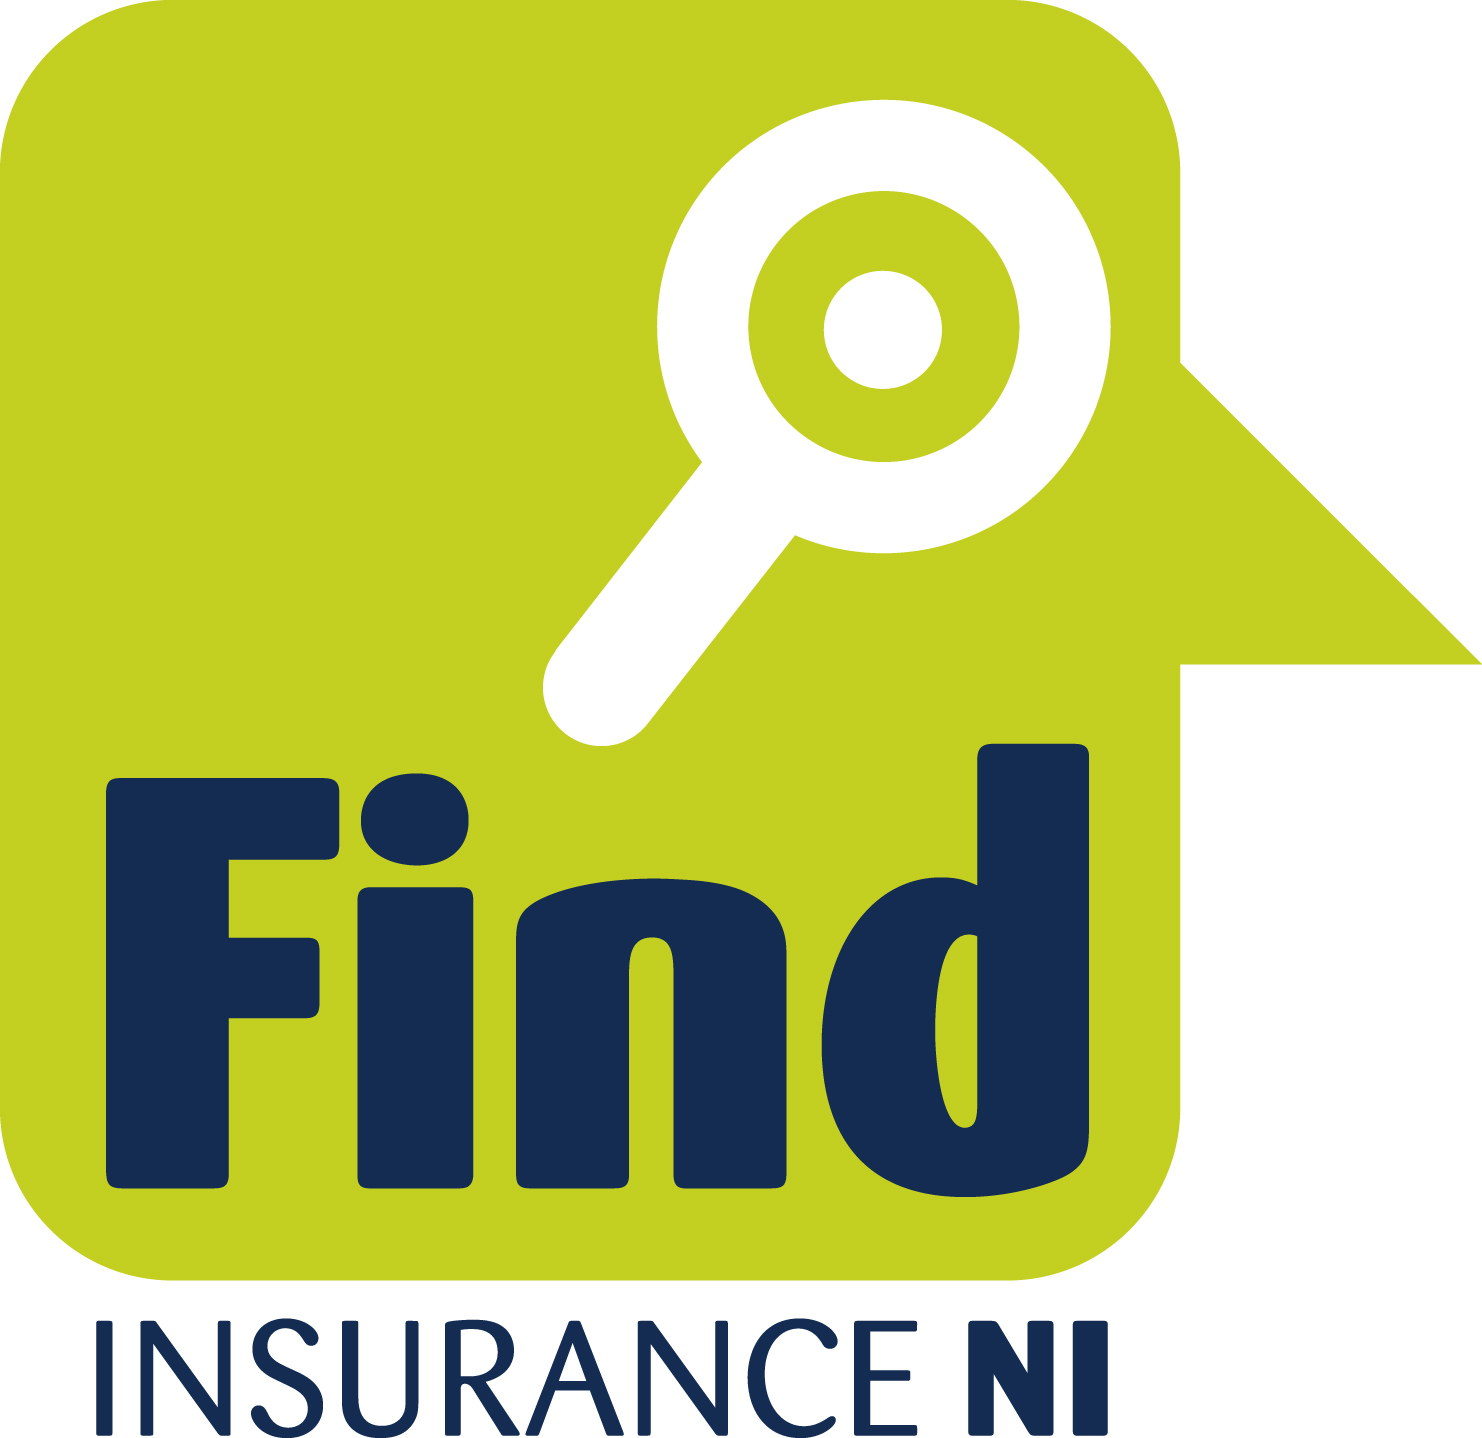 Find Insurance NI logo